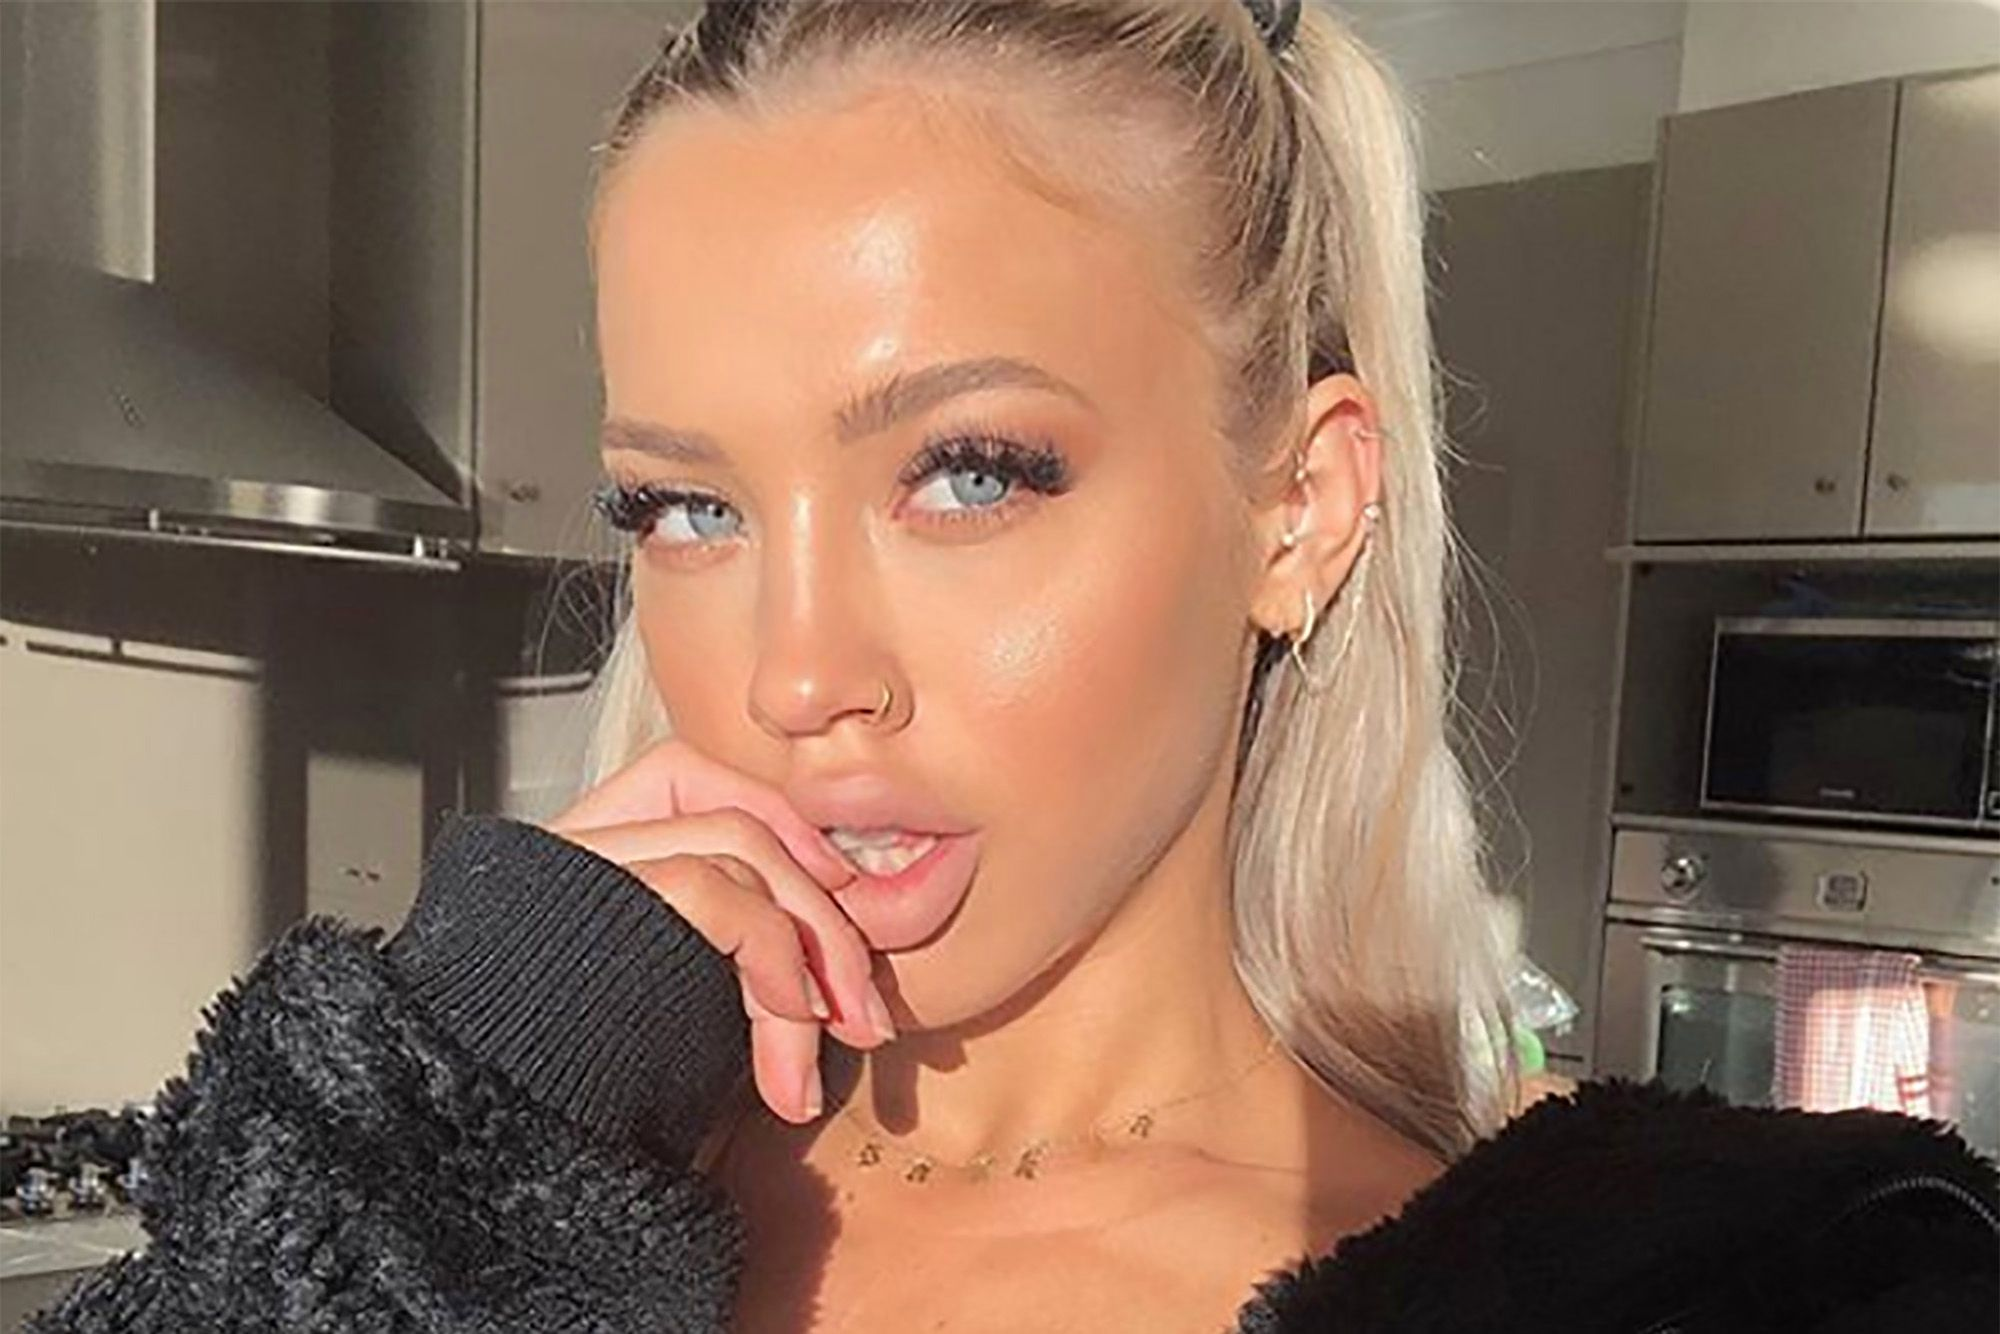 Tammy Hembrow Hot Face Wallpapers - Tammy Hembrow Hot Face Wallpapers